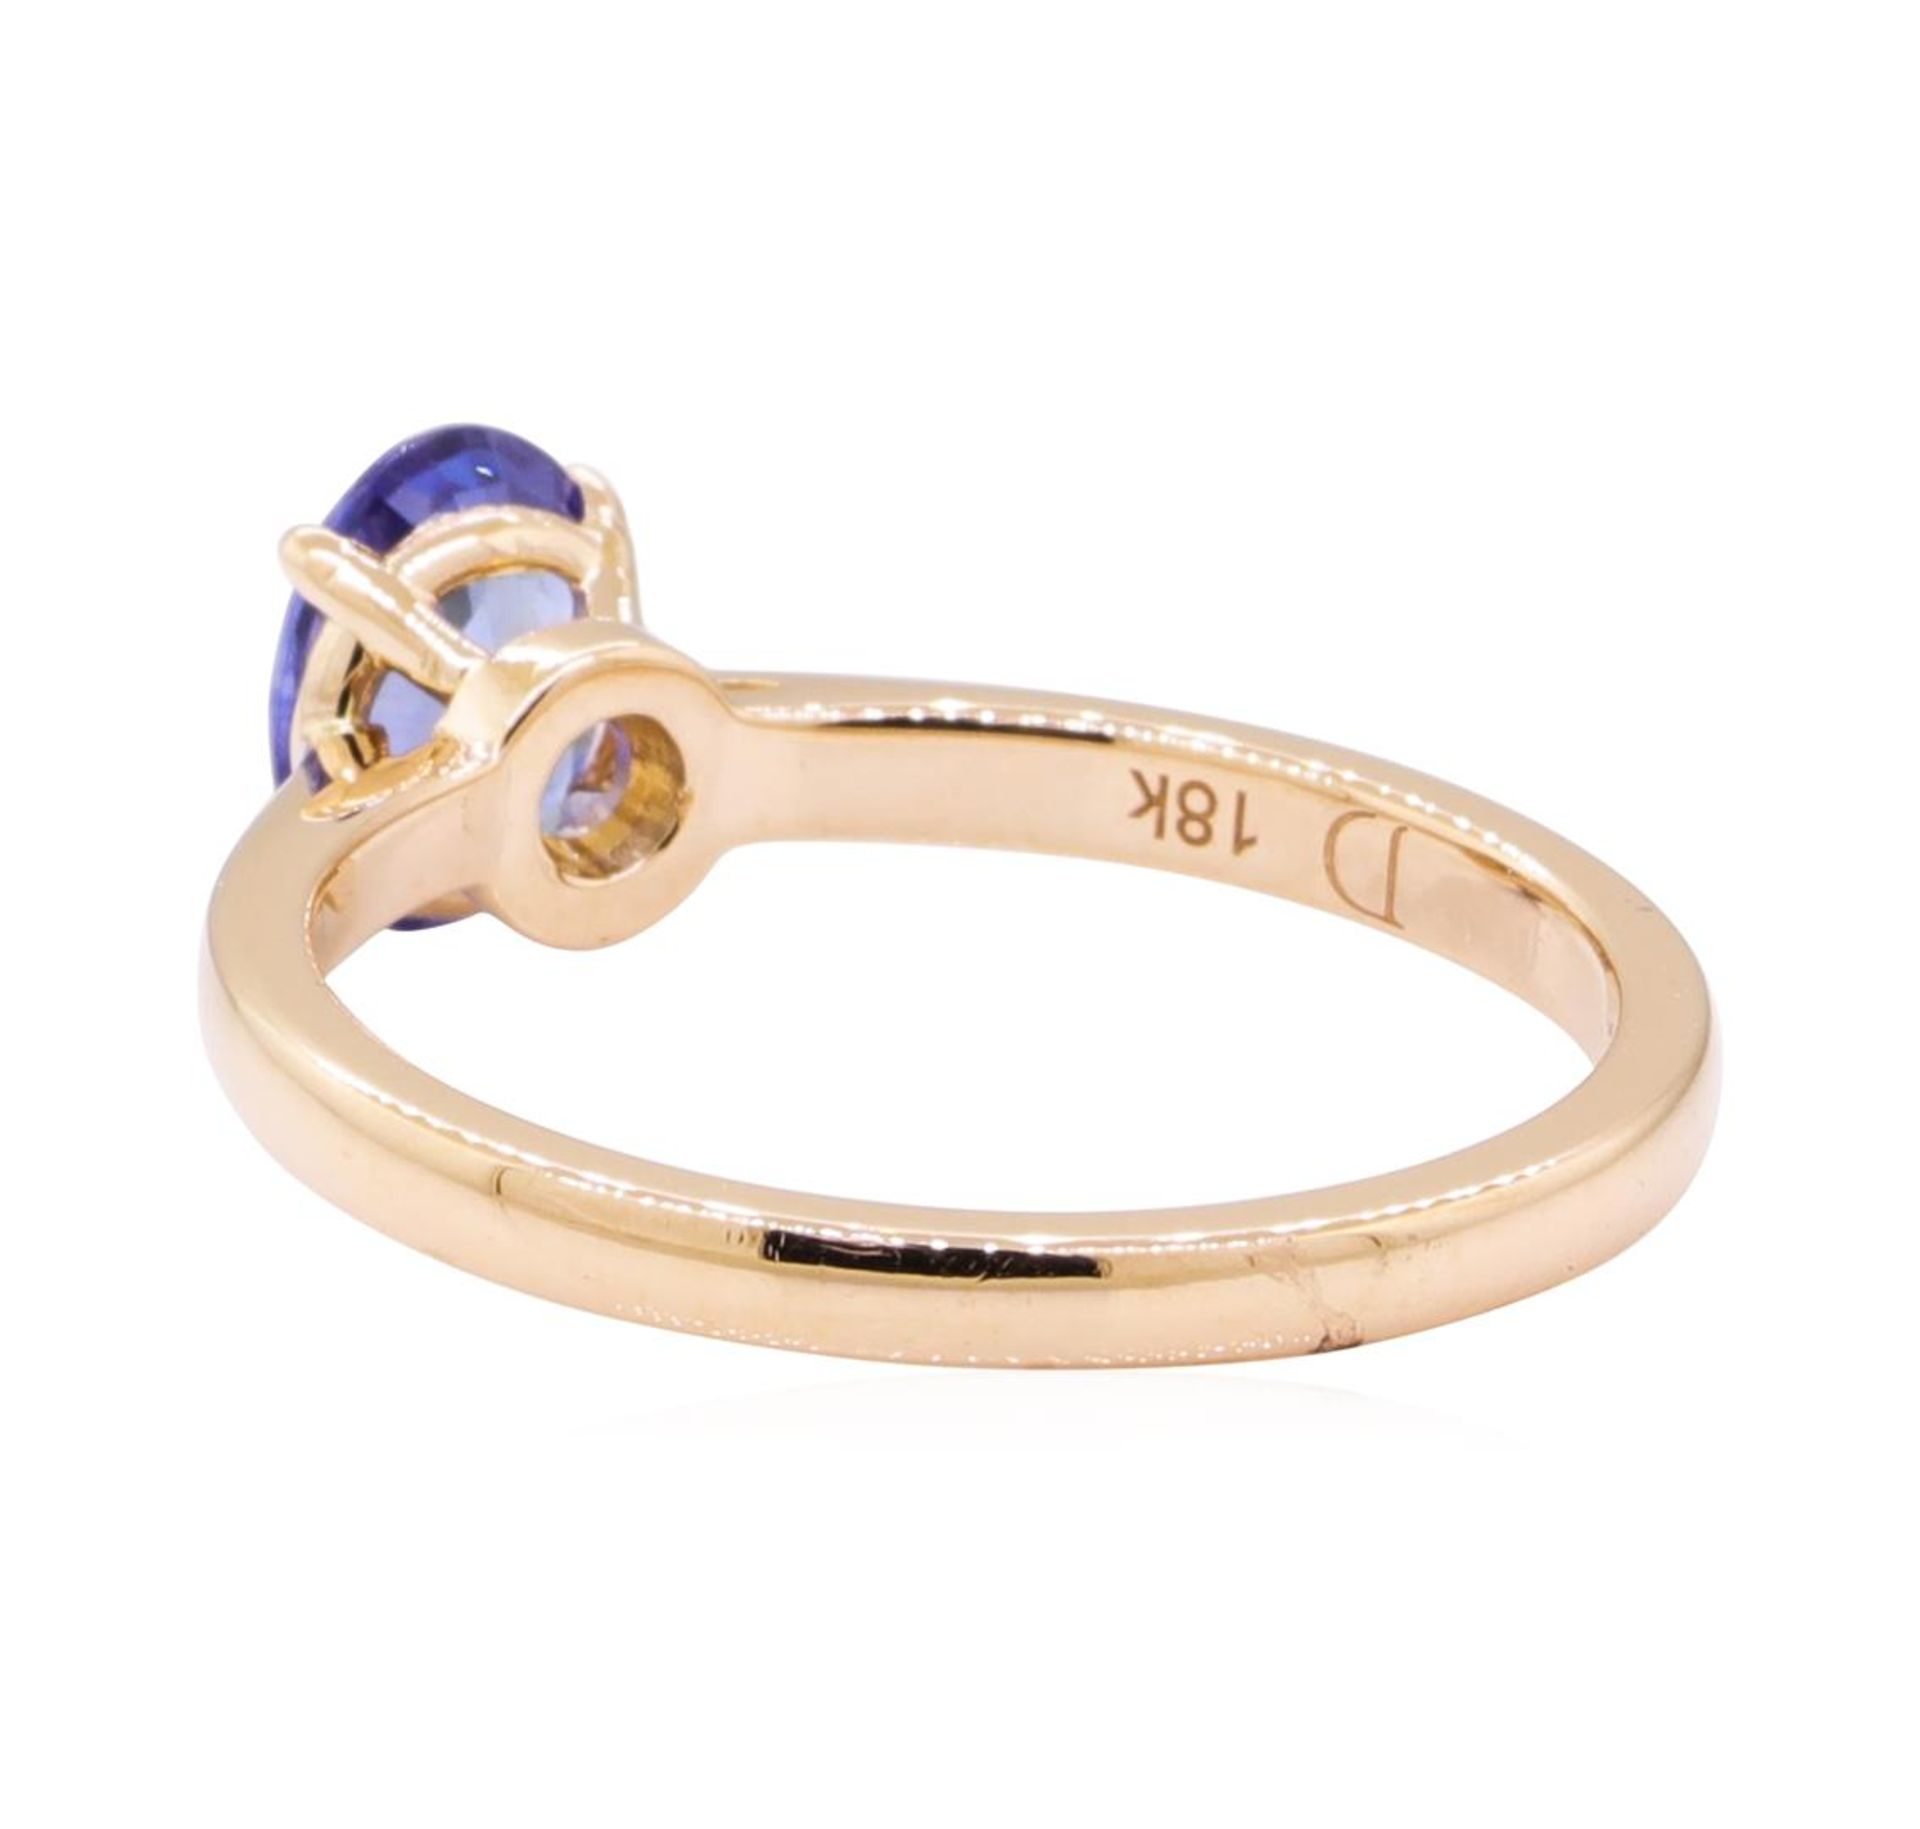 0.98ct Blue Sapphire Ring - 18KT Rose Gold - Image 3 of 4